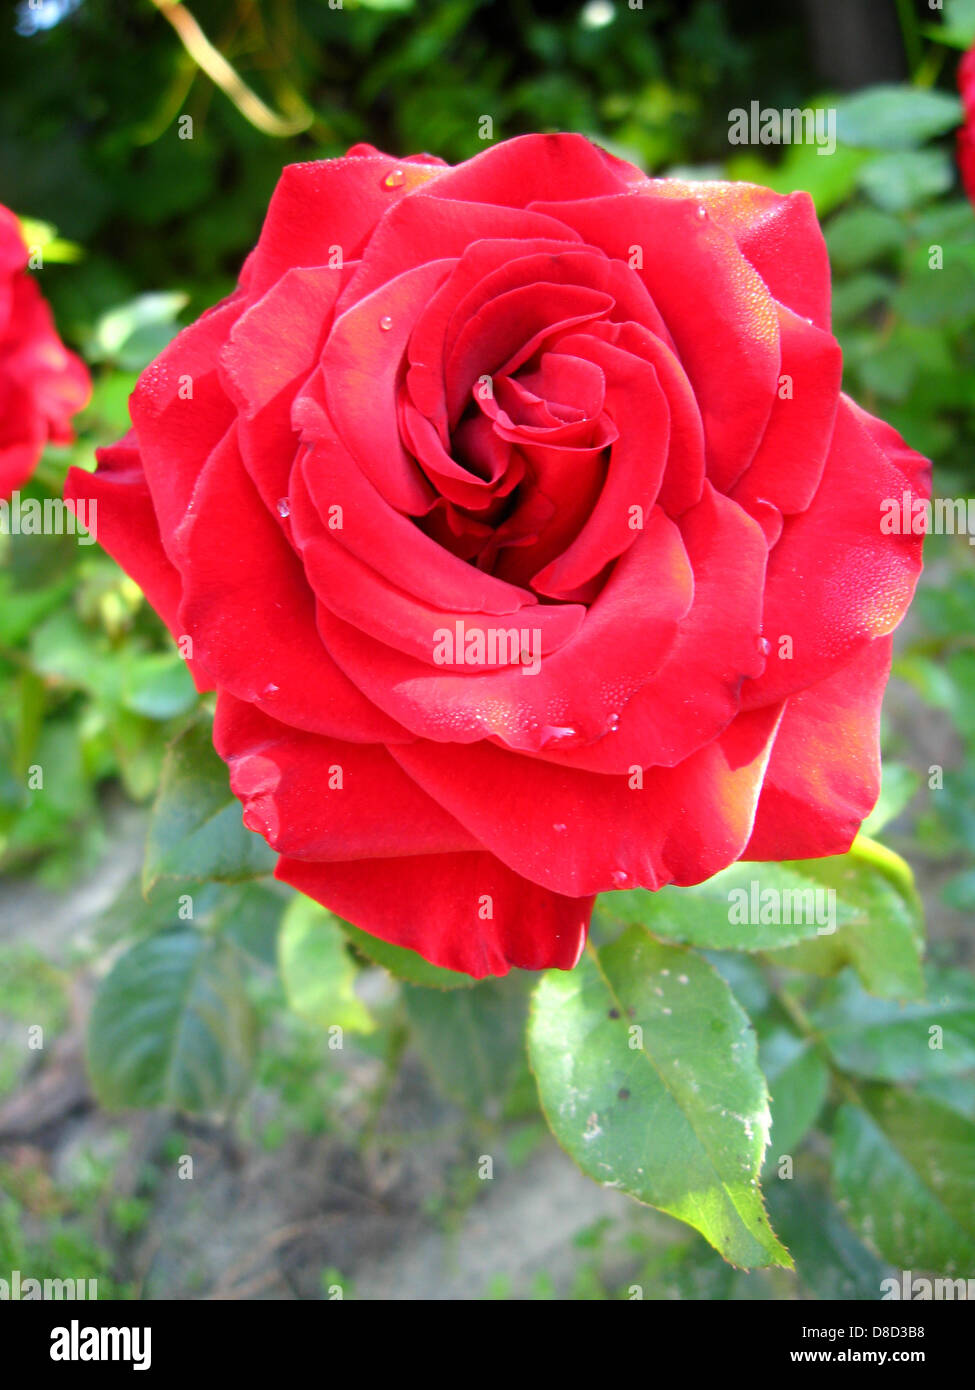 Natural Images Of Flowers Red Rose